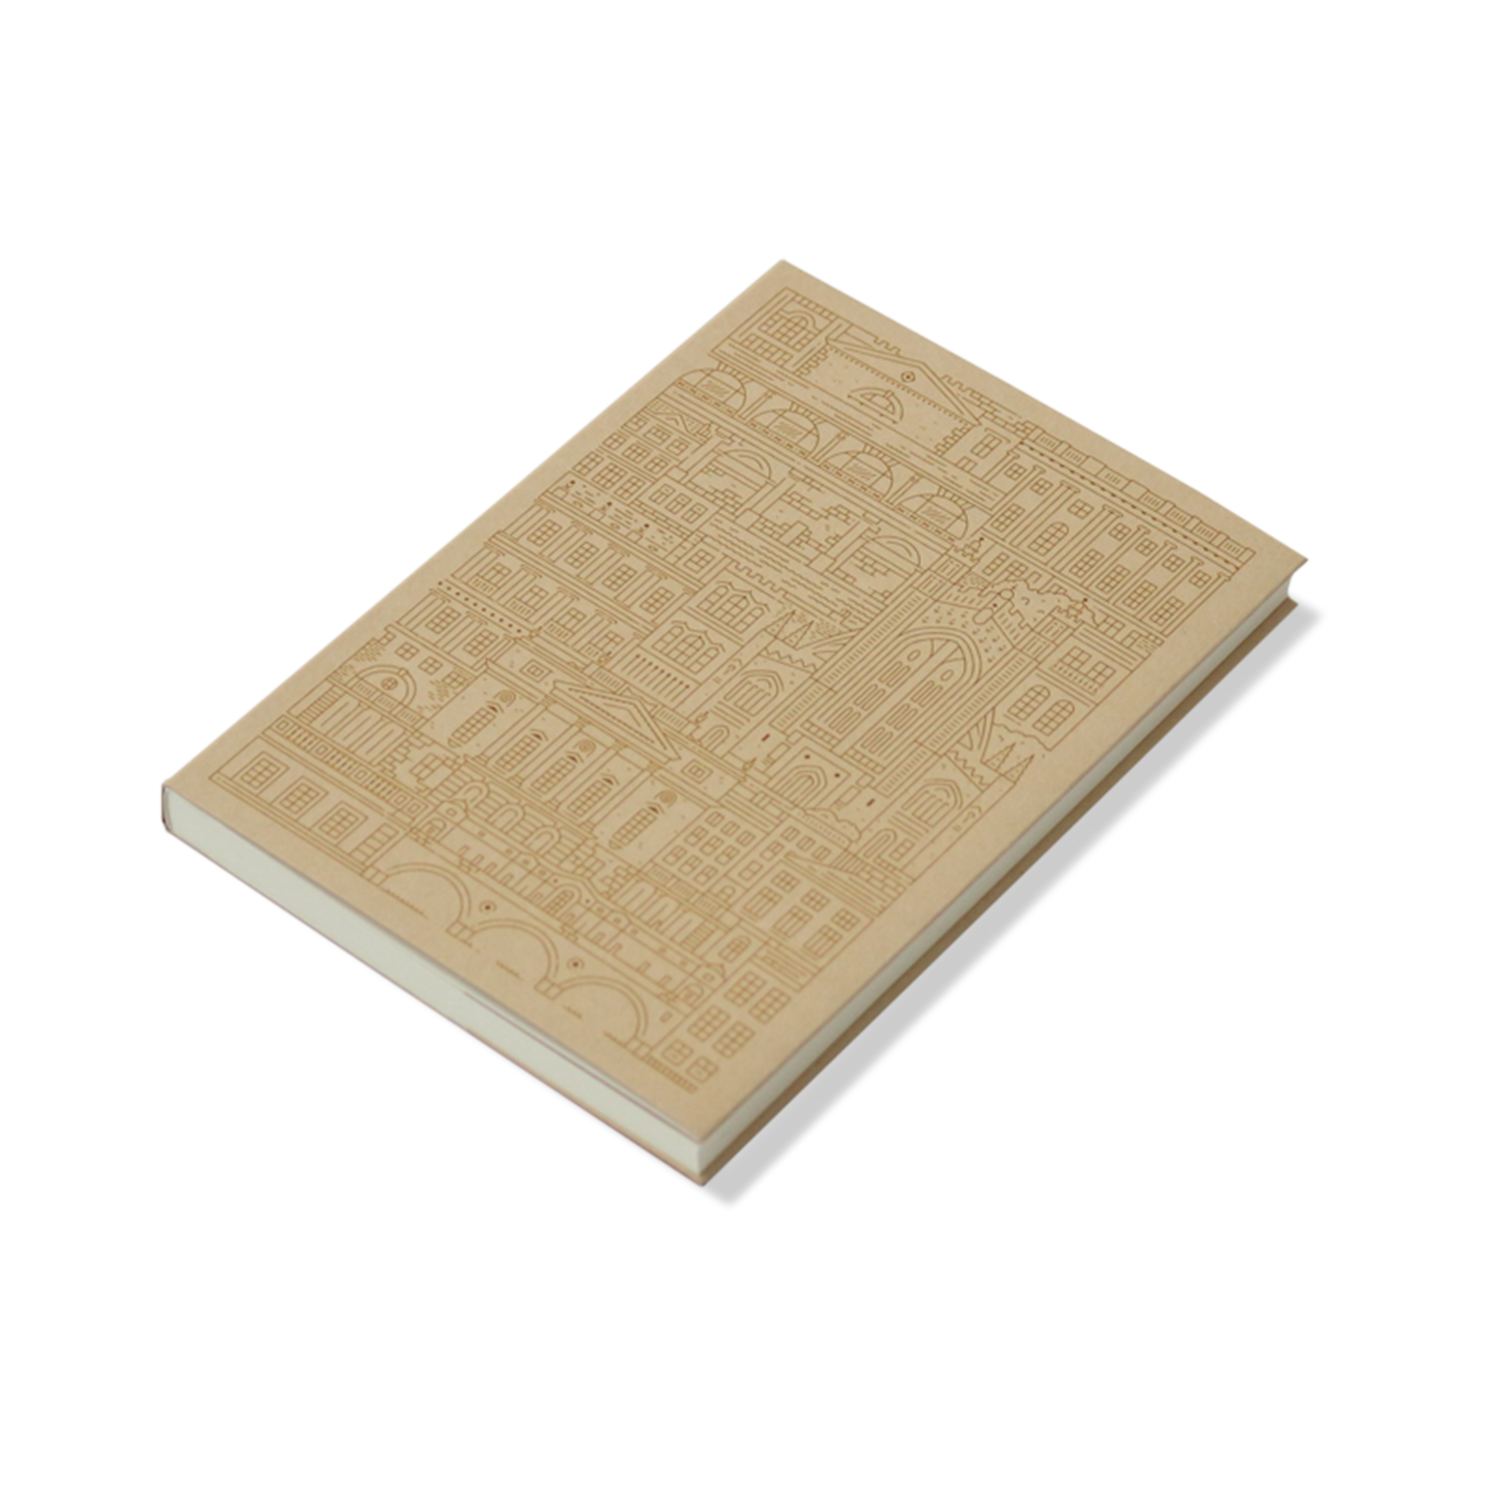 Place in Print The City Works Bath Notebook